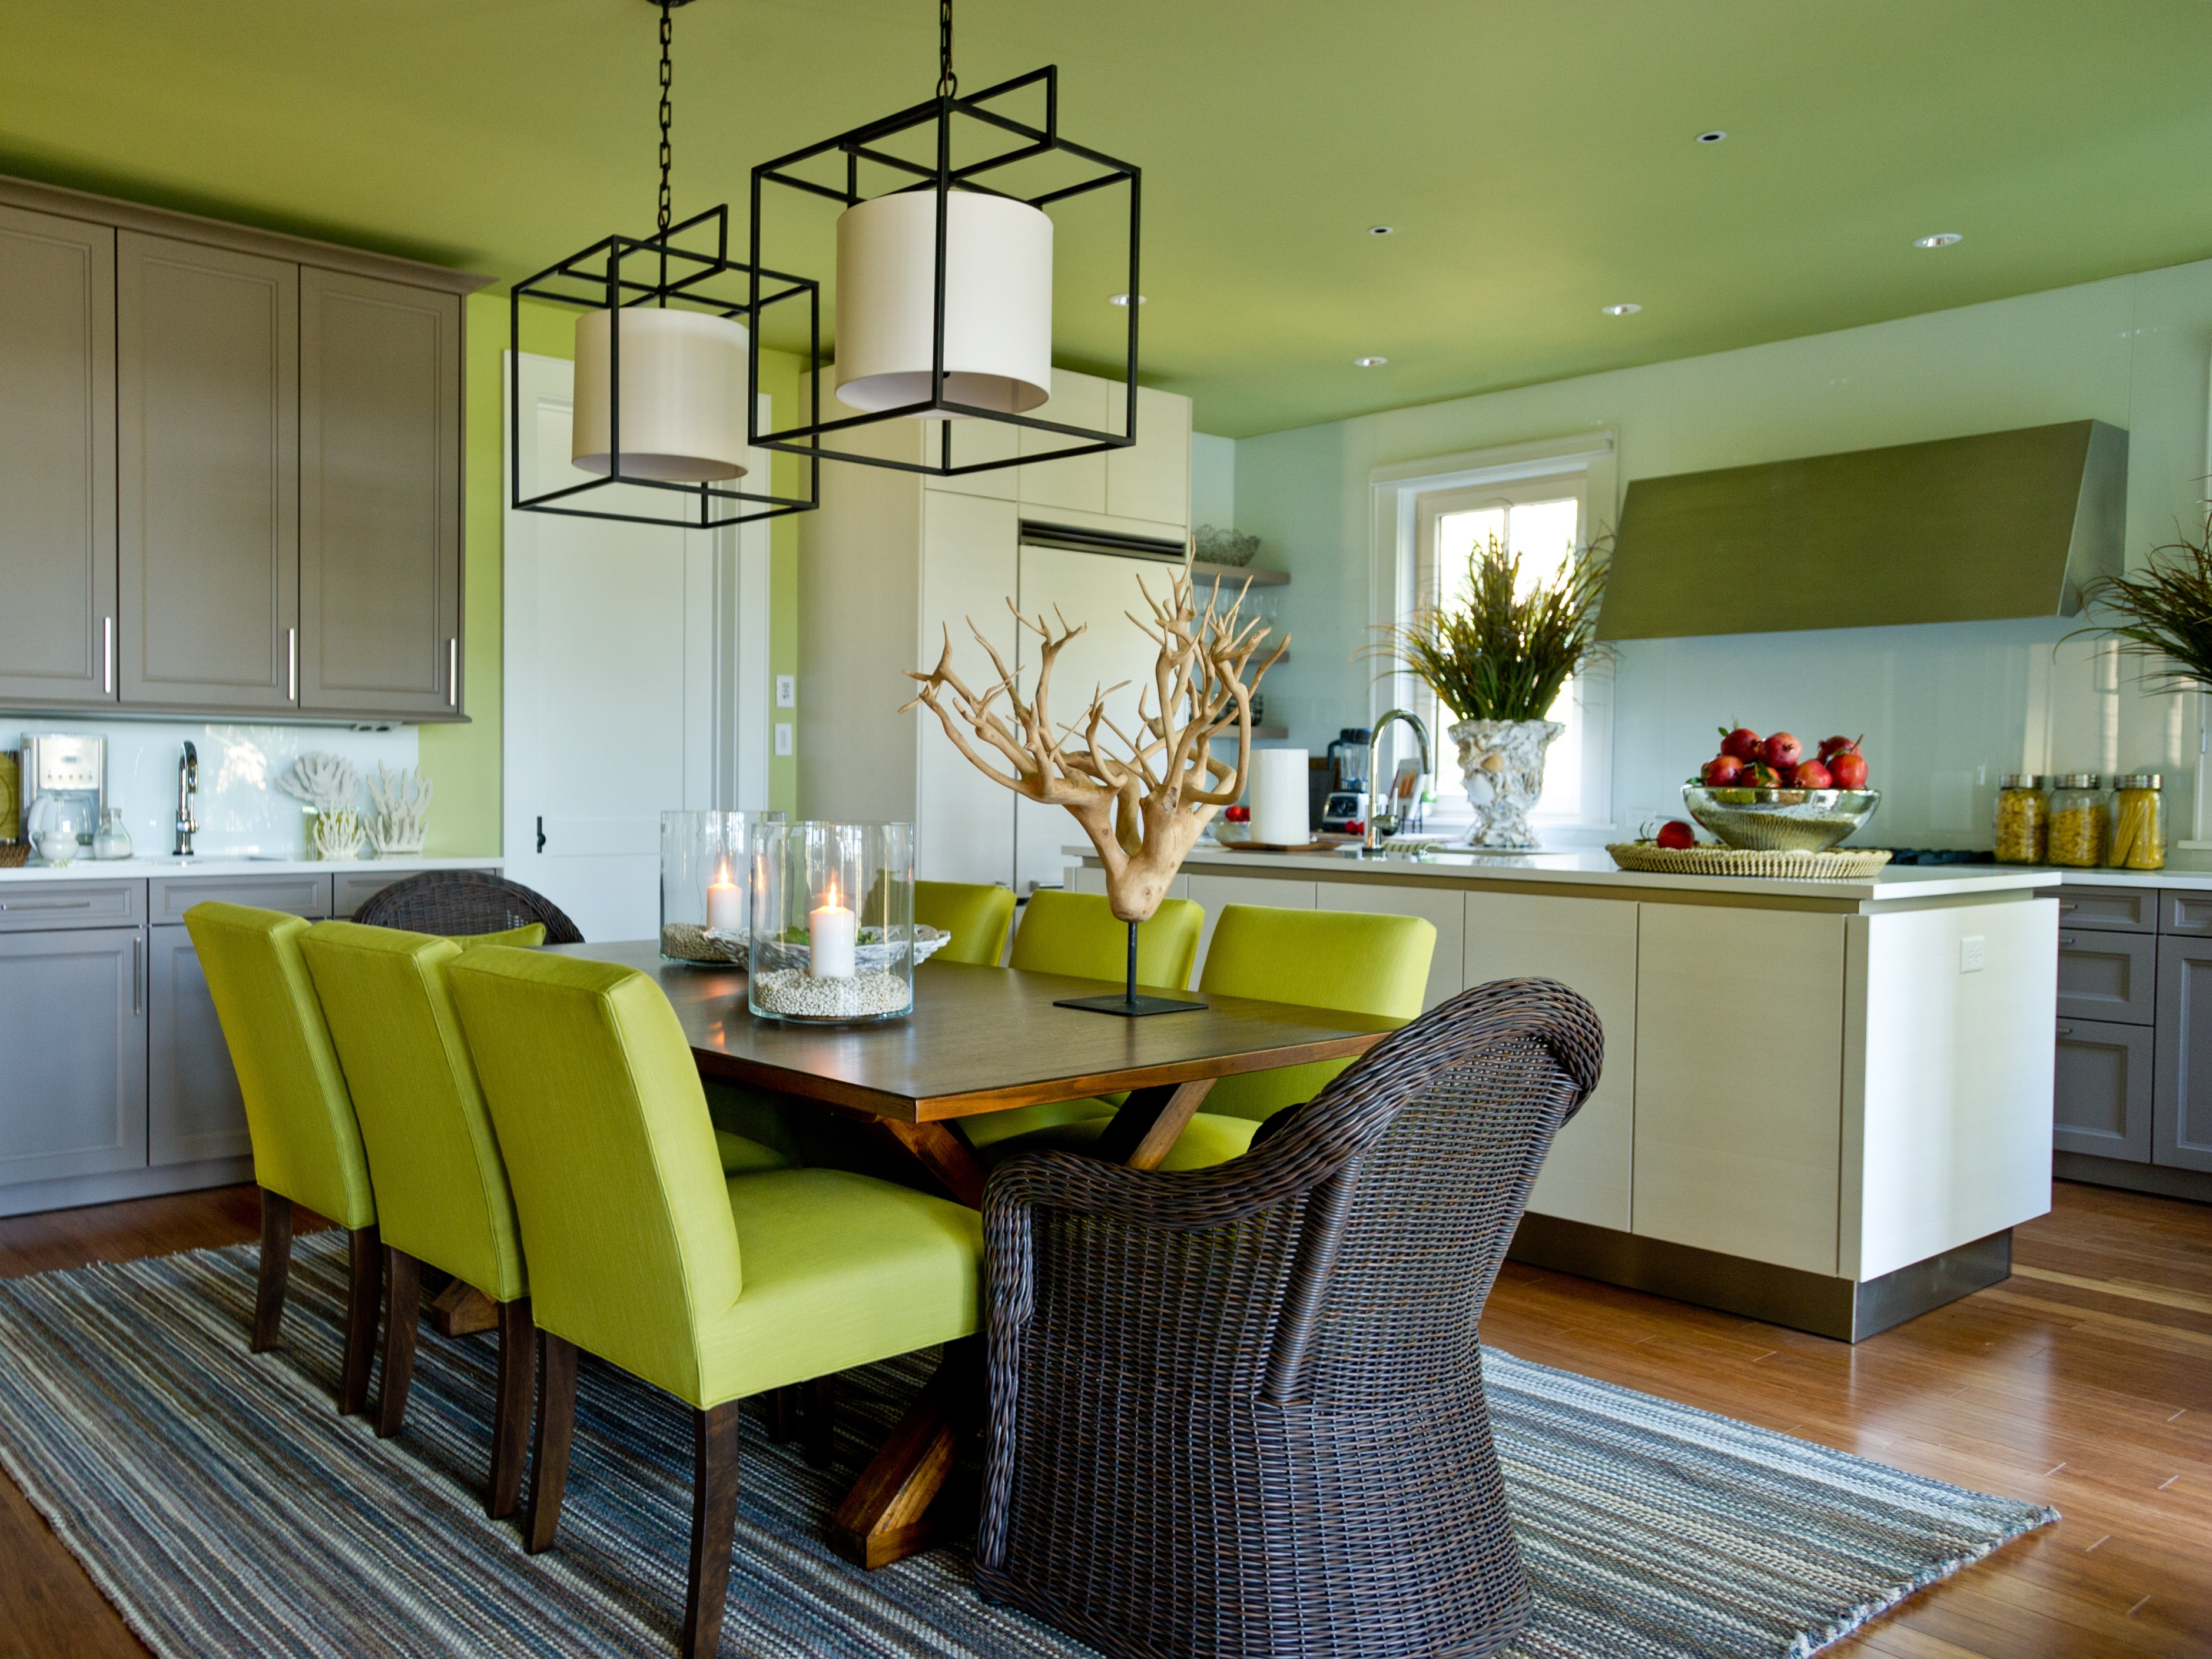 Expert Tips To Choose The Dining Room Chairs And Table ...